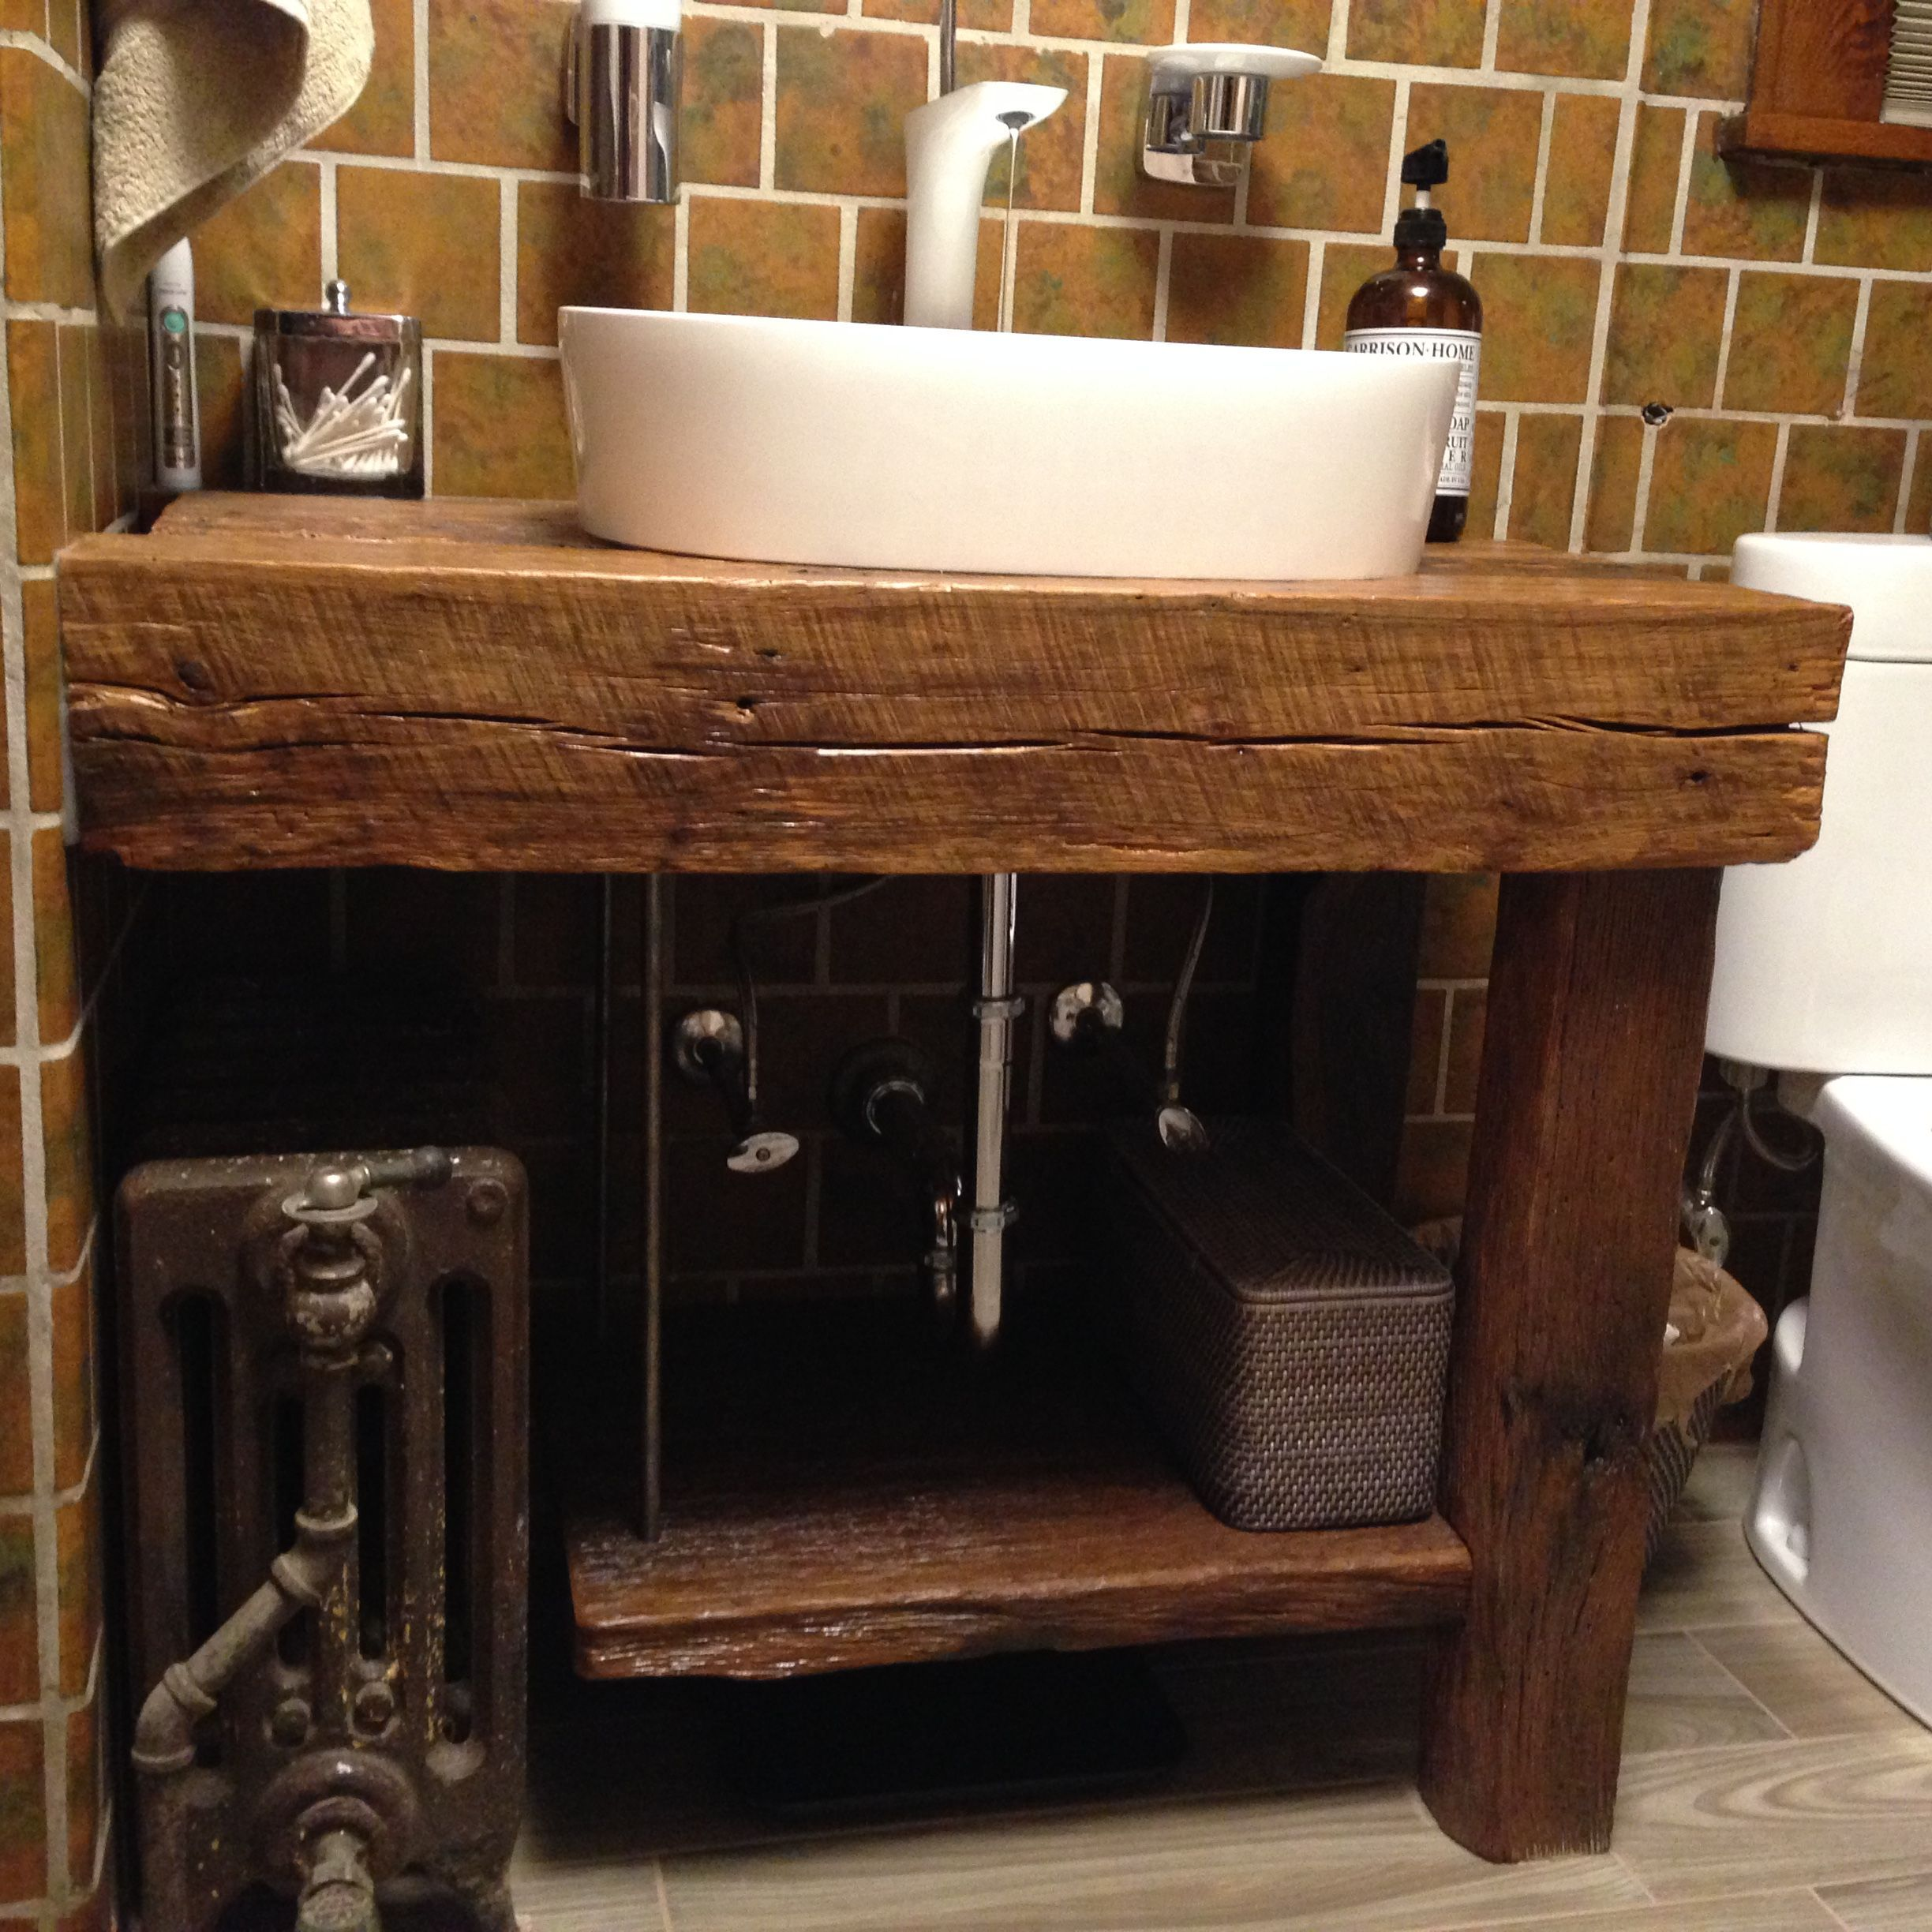 hand crafted rustic bath vanity reclaimed barnwood by intelligent design woodwork. Black Bedroom Furniture Sets. Home Design Ideas